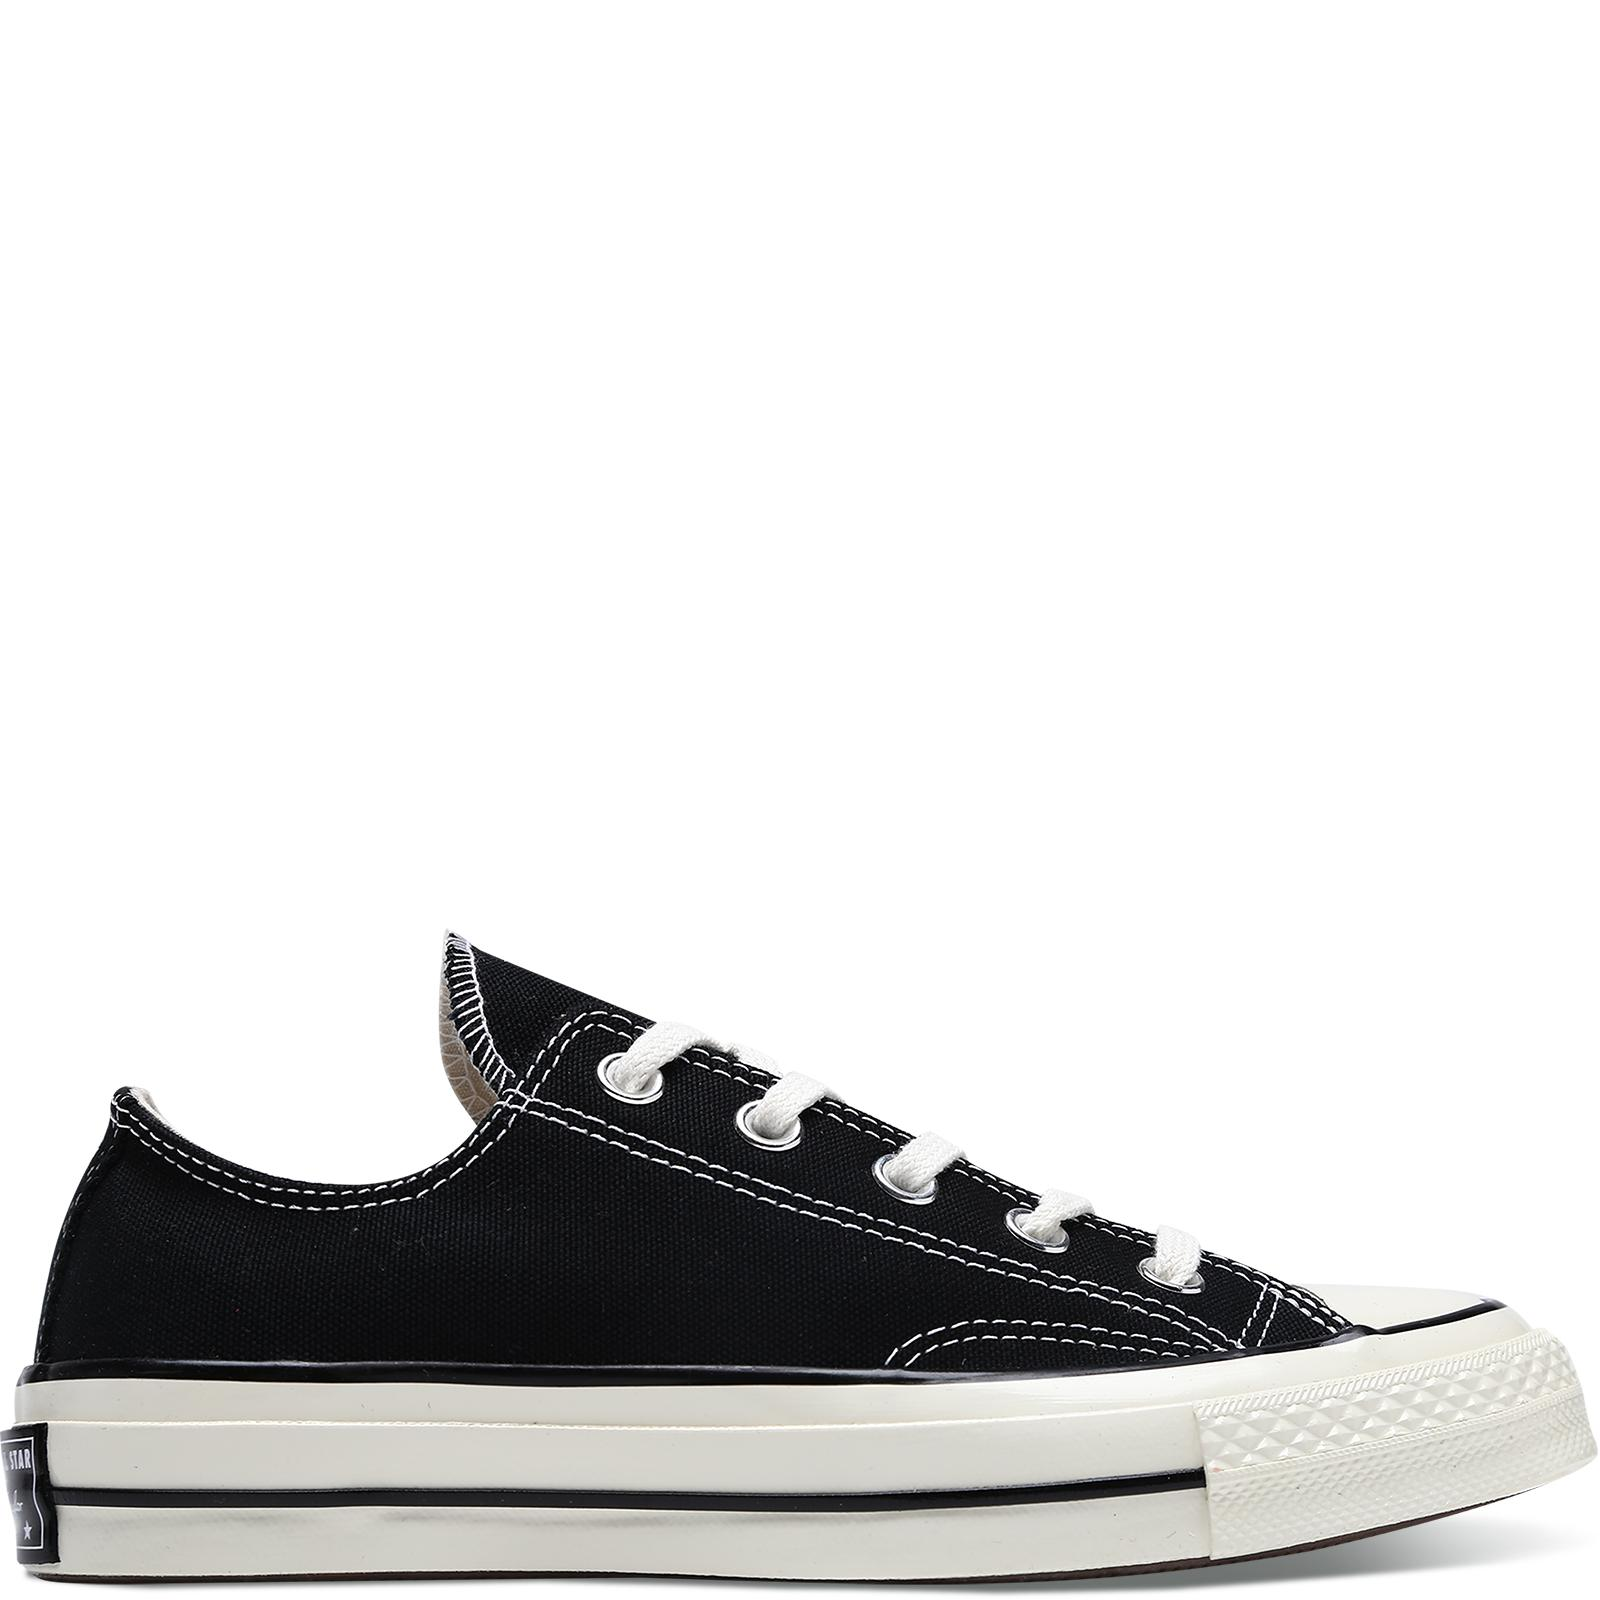 9875a75115b2 Converse Philippines  Converse price list - Shoes for Men   Women ...